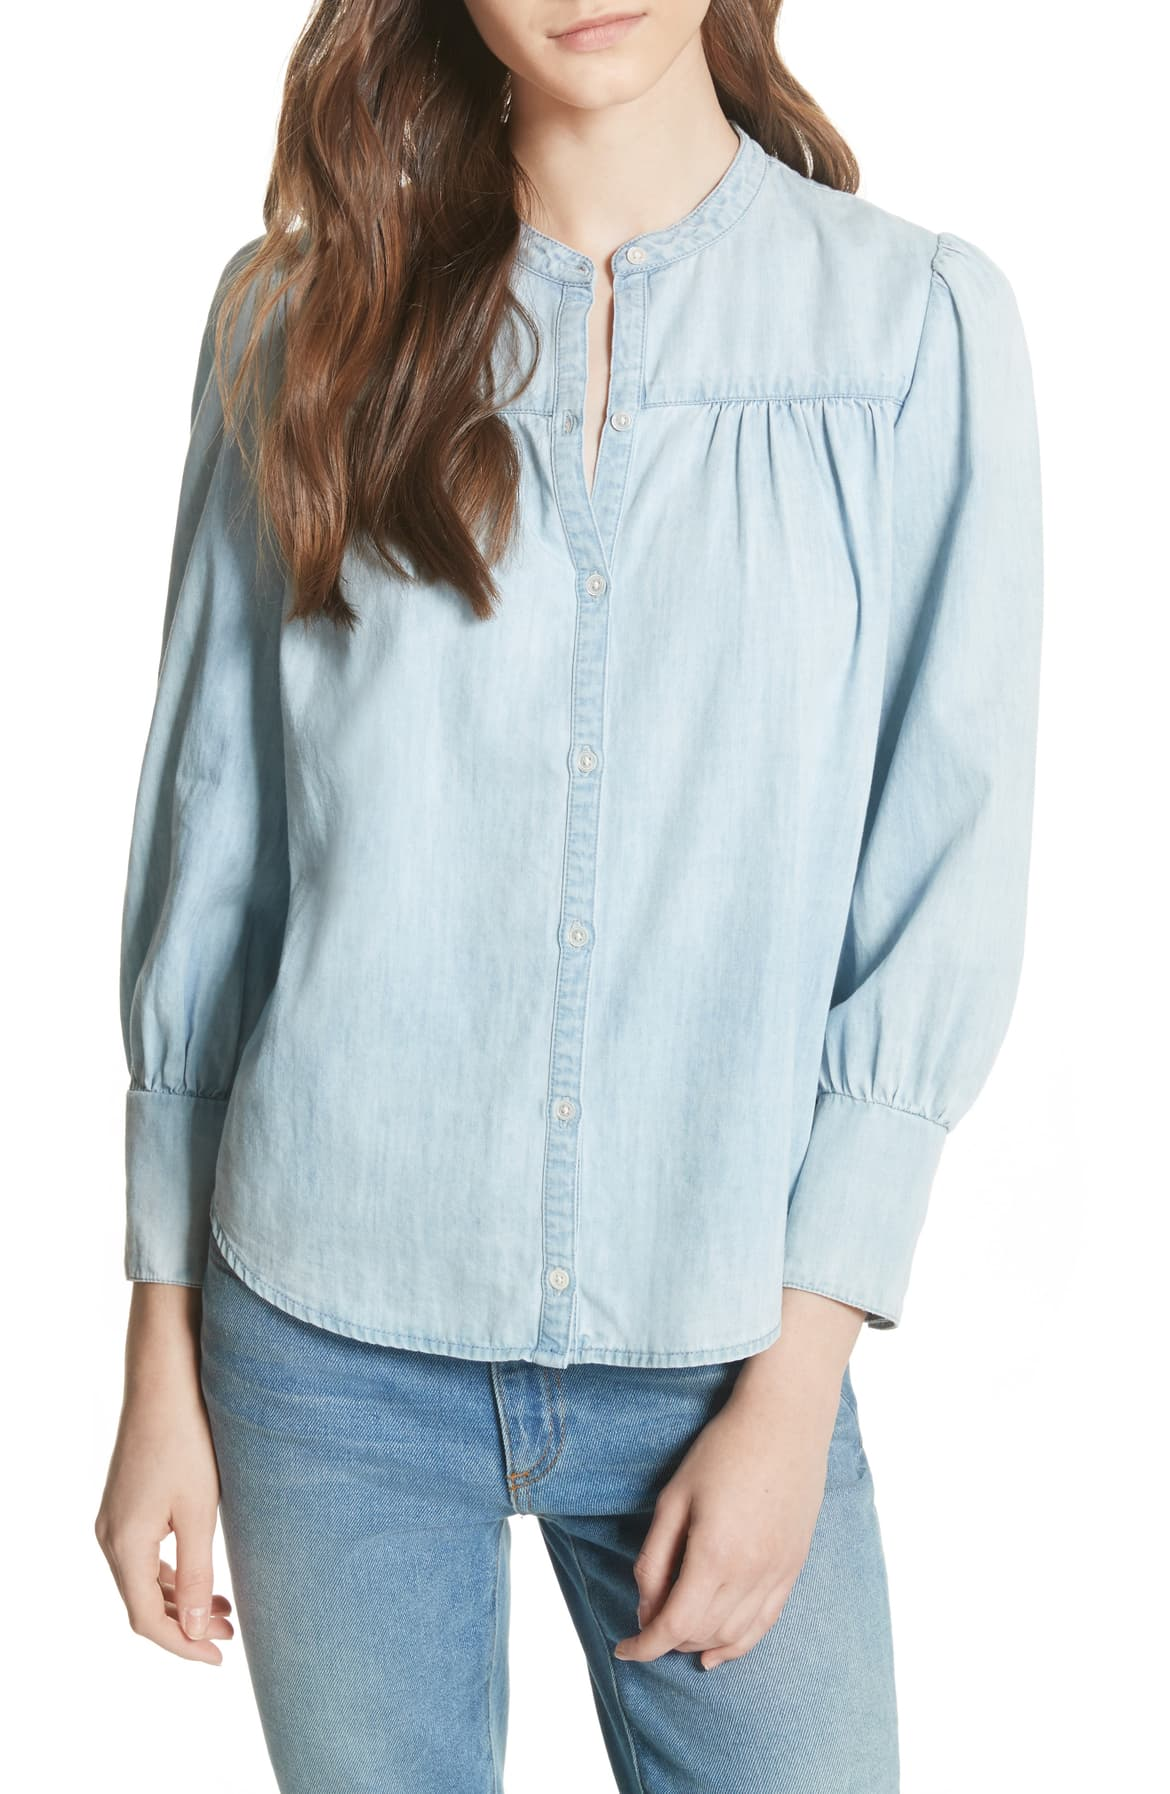 Joie Women's Aubrielle Silk Cotton Chambray Top Western Faded S